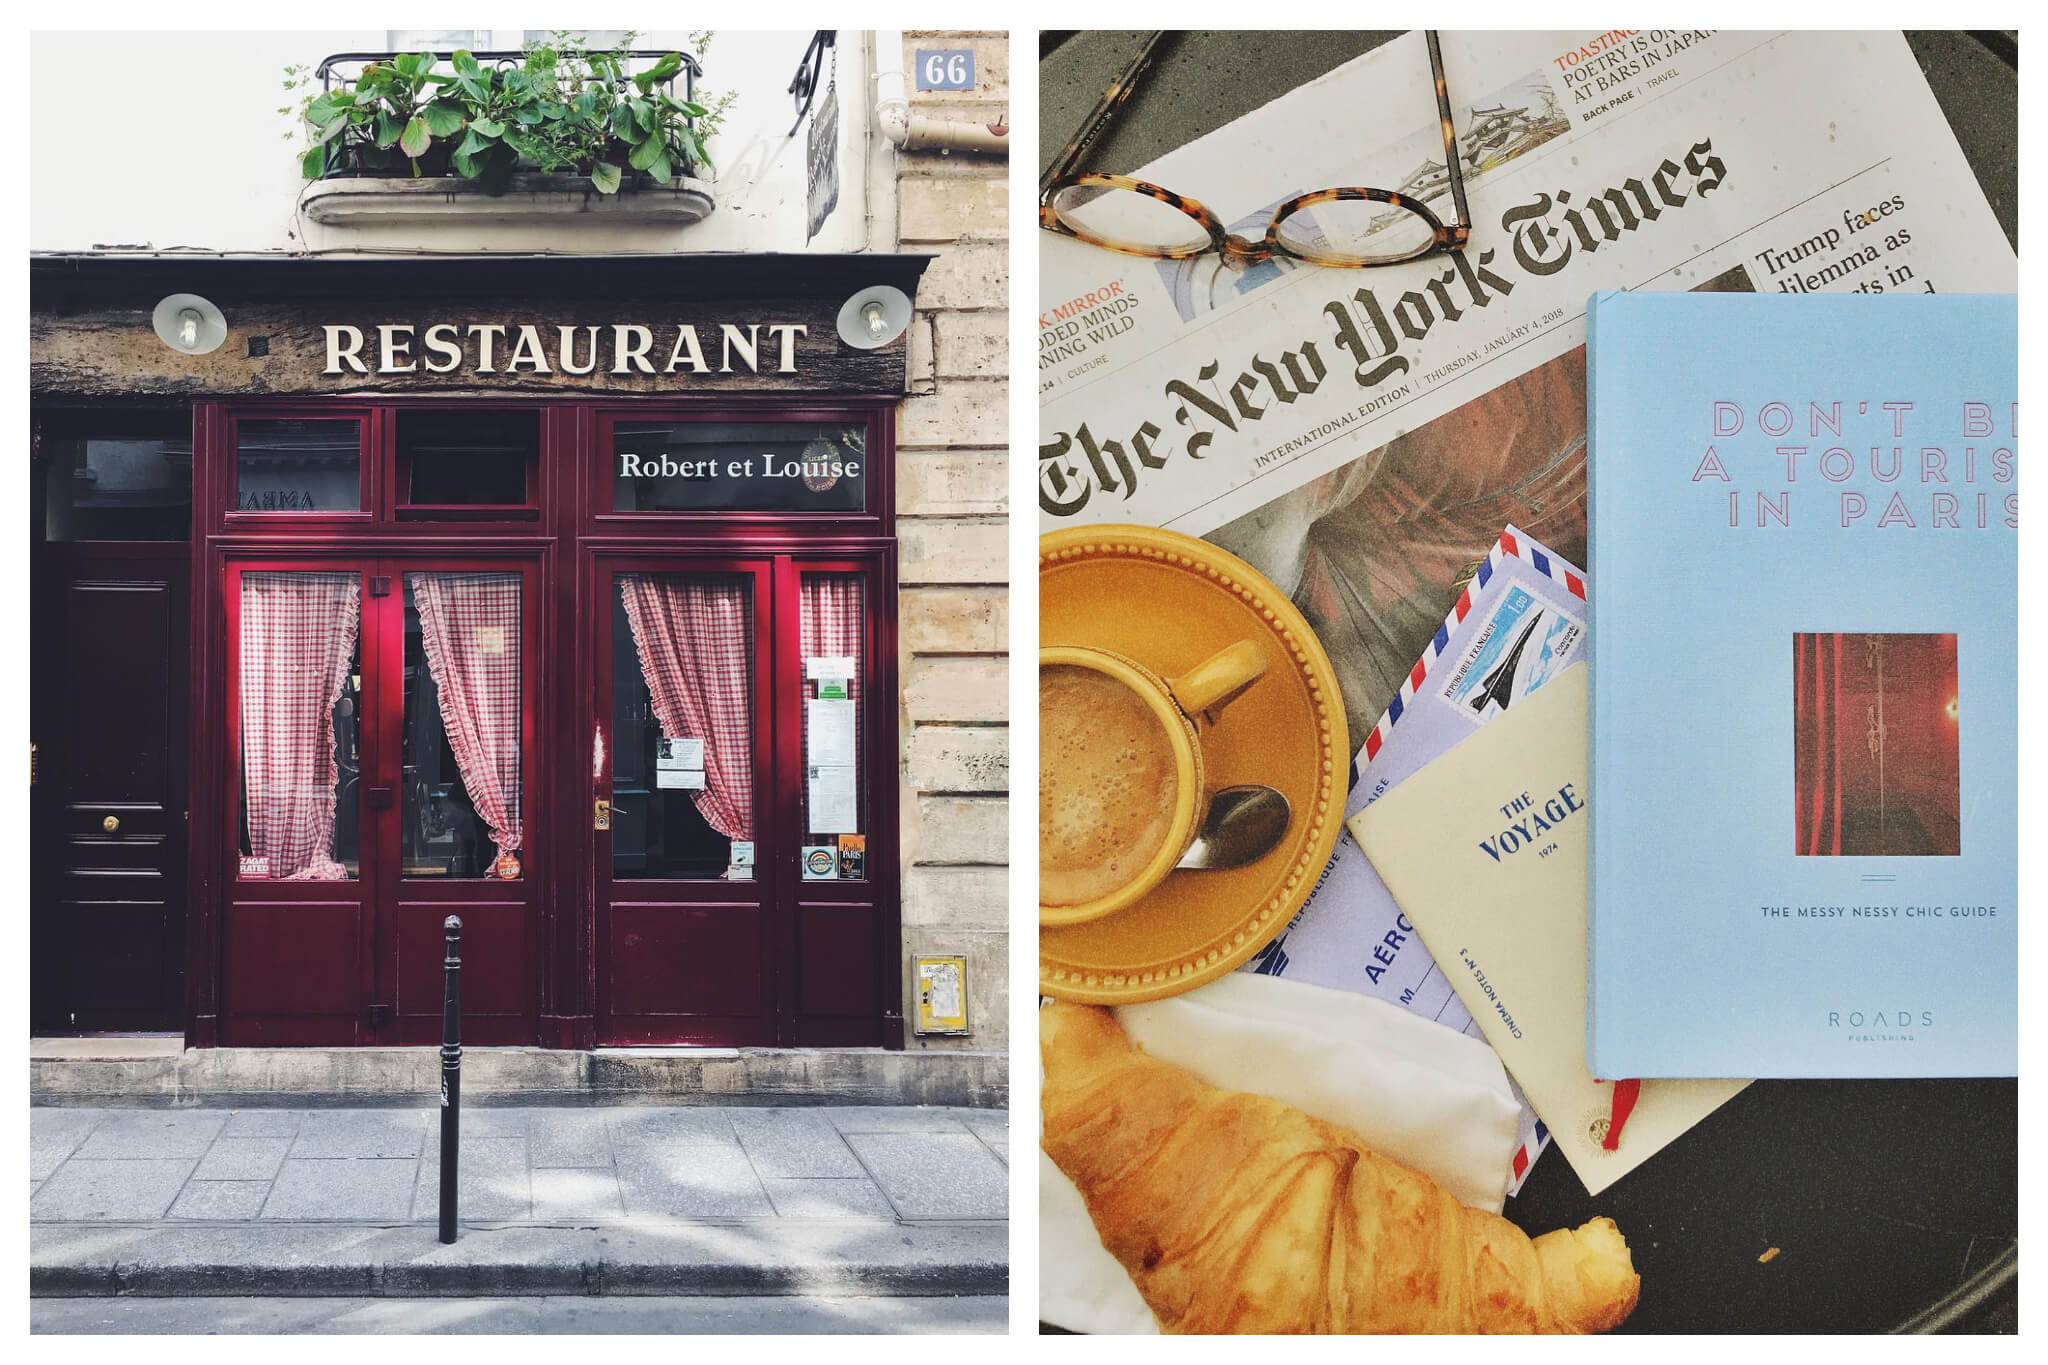 """Left: The storefront of the quaint, authentic french restaurant Robert et Louise in Paris' Marais neighborhood, Right: An overview of an assortment of items on a table, including the New York Times, an espresso, a pair of glasses, a croisant and the book """"Don't Be a Tourist in Paris"""" by Vanessa Grall"""